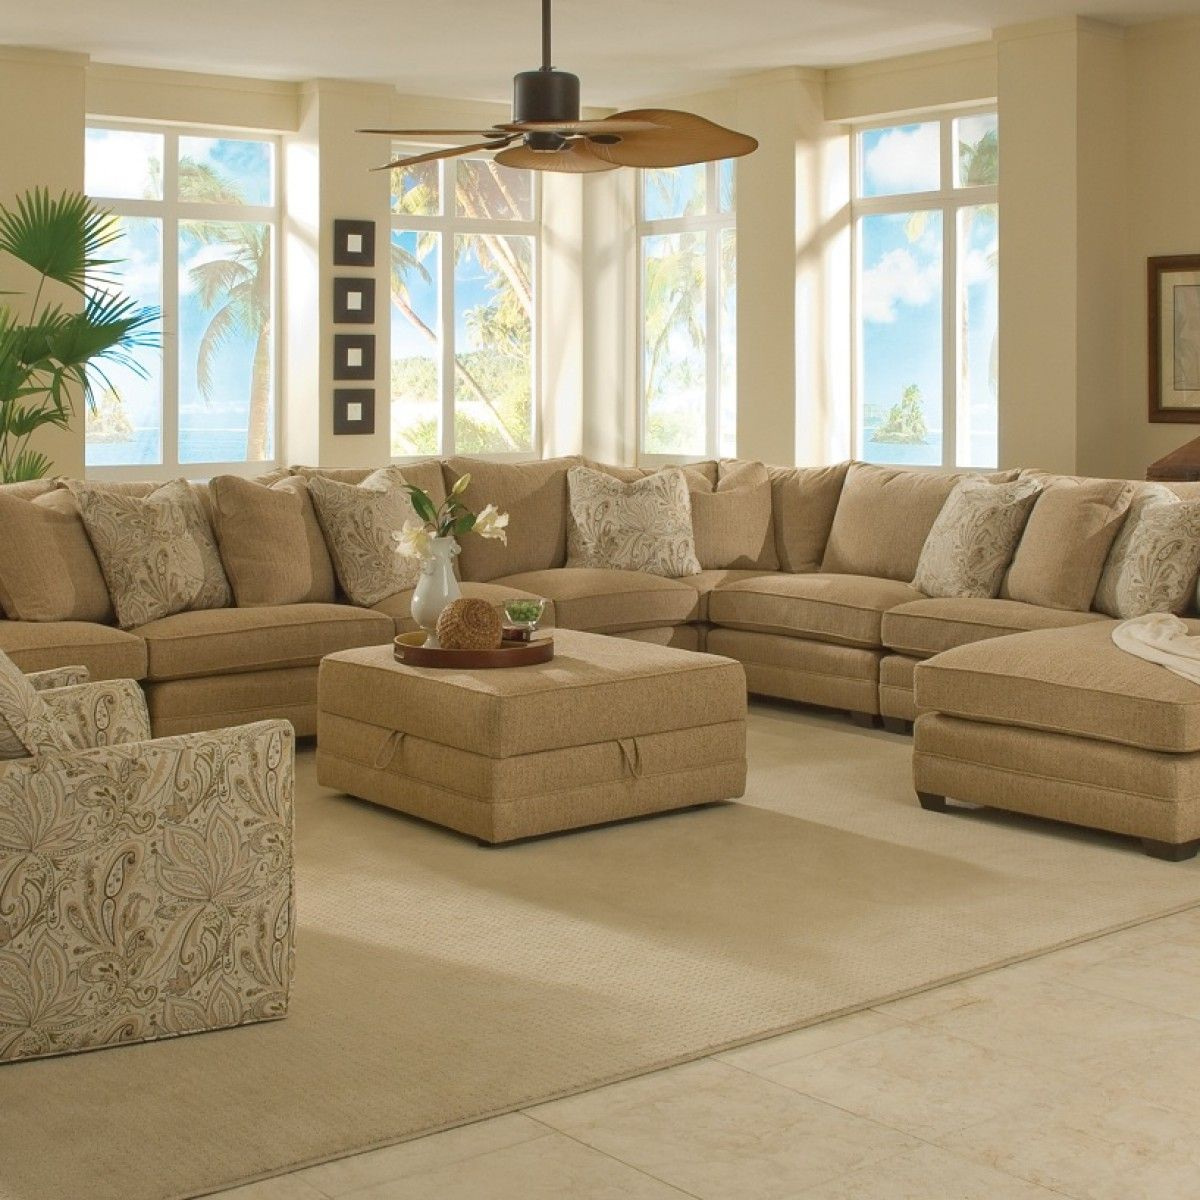 Magnificent large sectional sofas family room Circular couches living room furniture